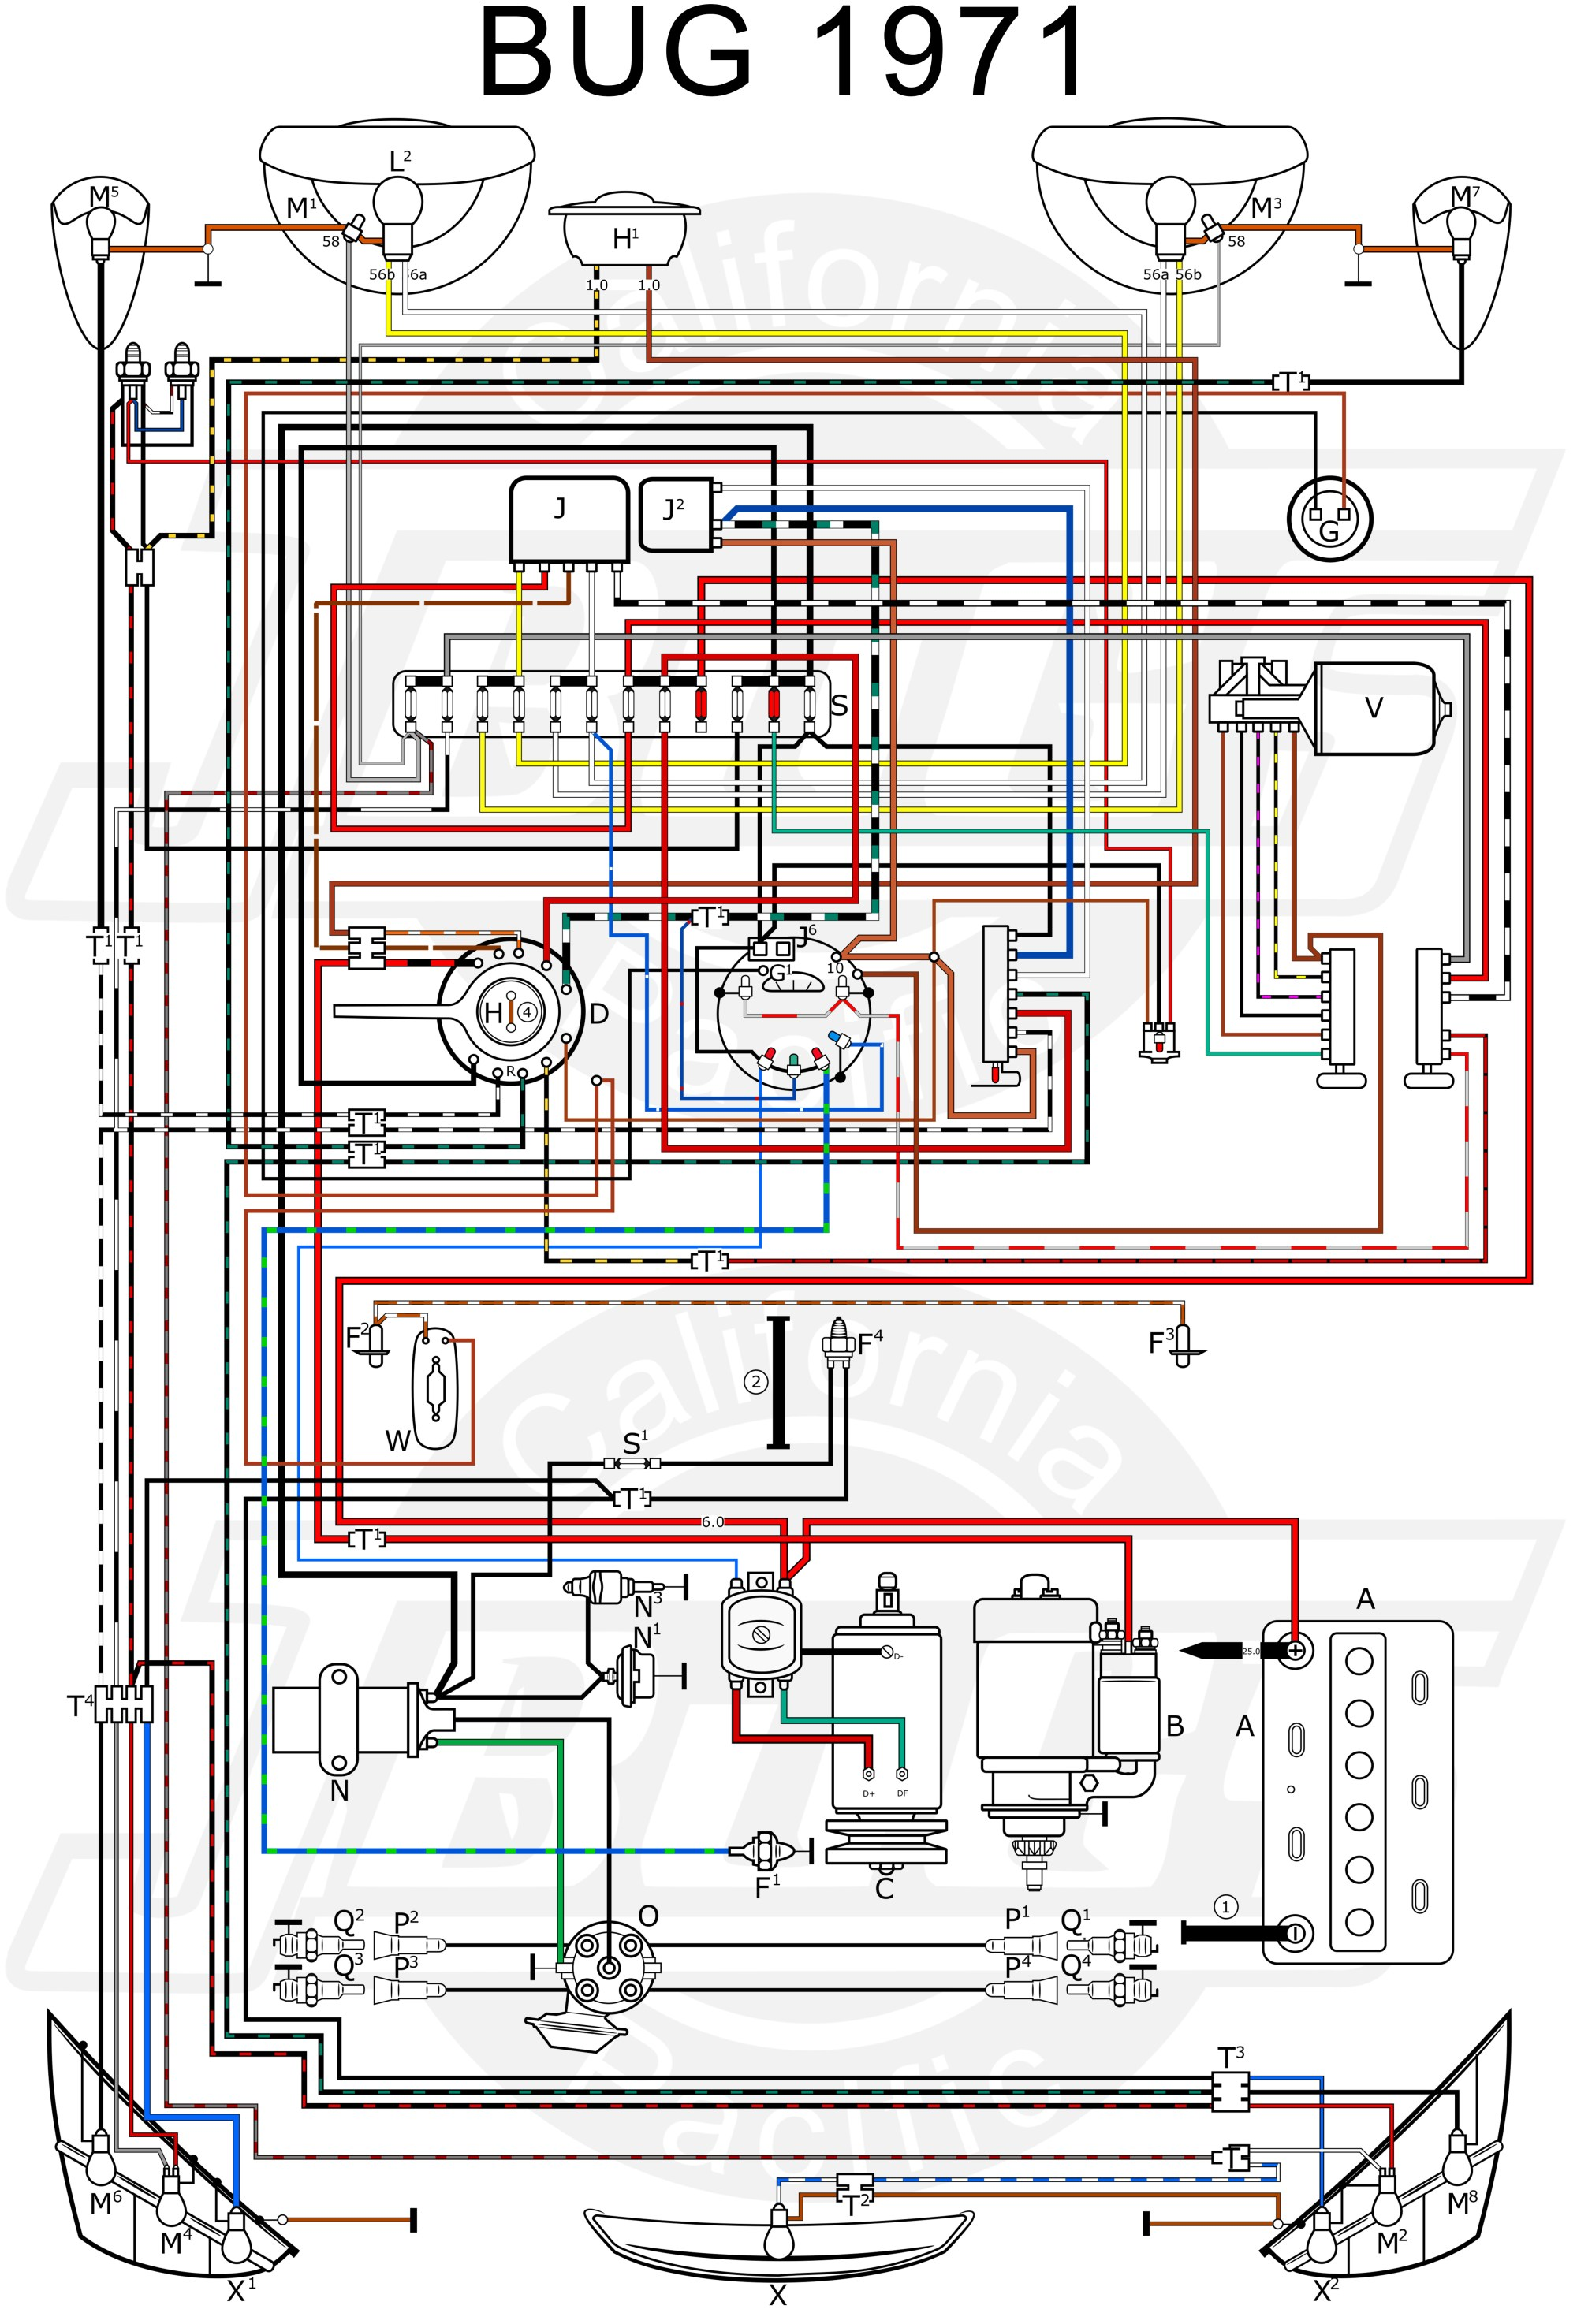 hight resolution of 1975 volkswagen beetle wiring diagram wiring diagram note 1975 vw beetle alternator wiring diagram